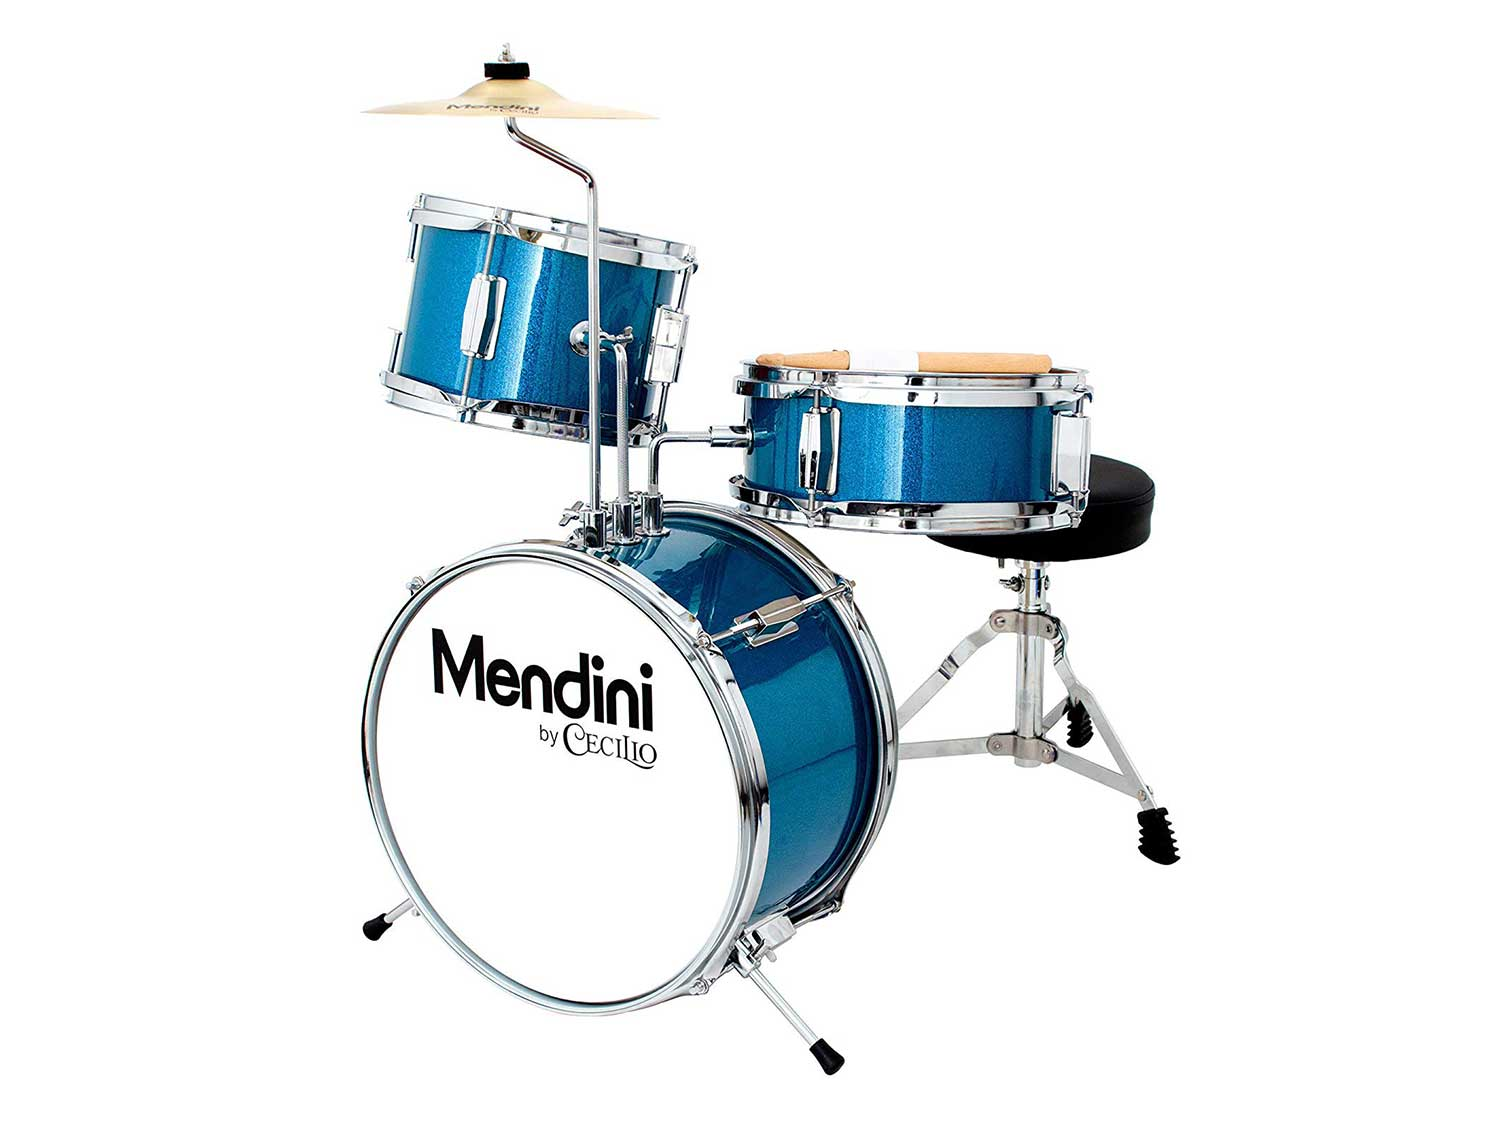 Mendini by Cecilio 13 inch 3-Piece Kids/Junior Drum Set with Throne, Cymbal, Pedal & Drumsticks, Metallic Blue